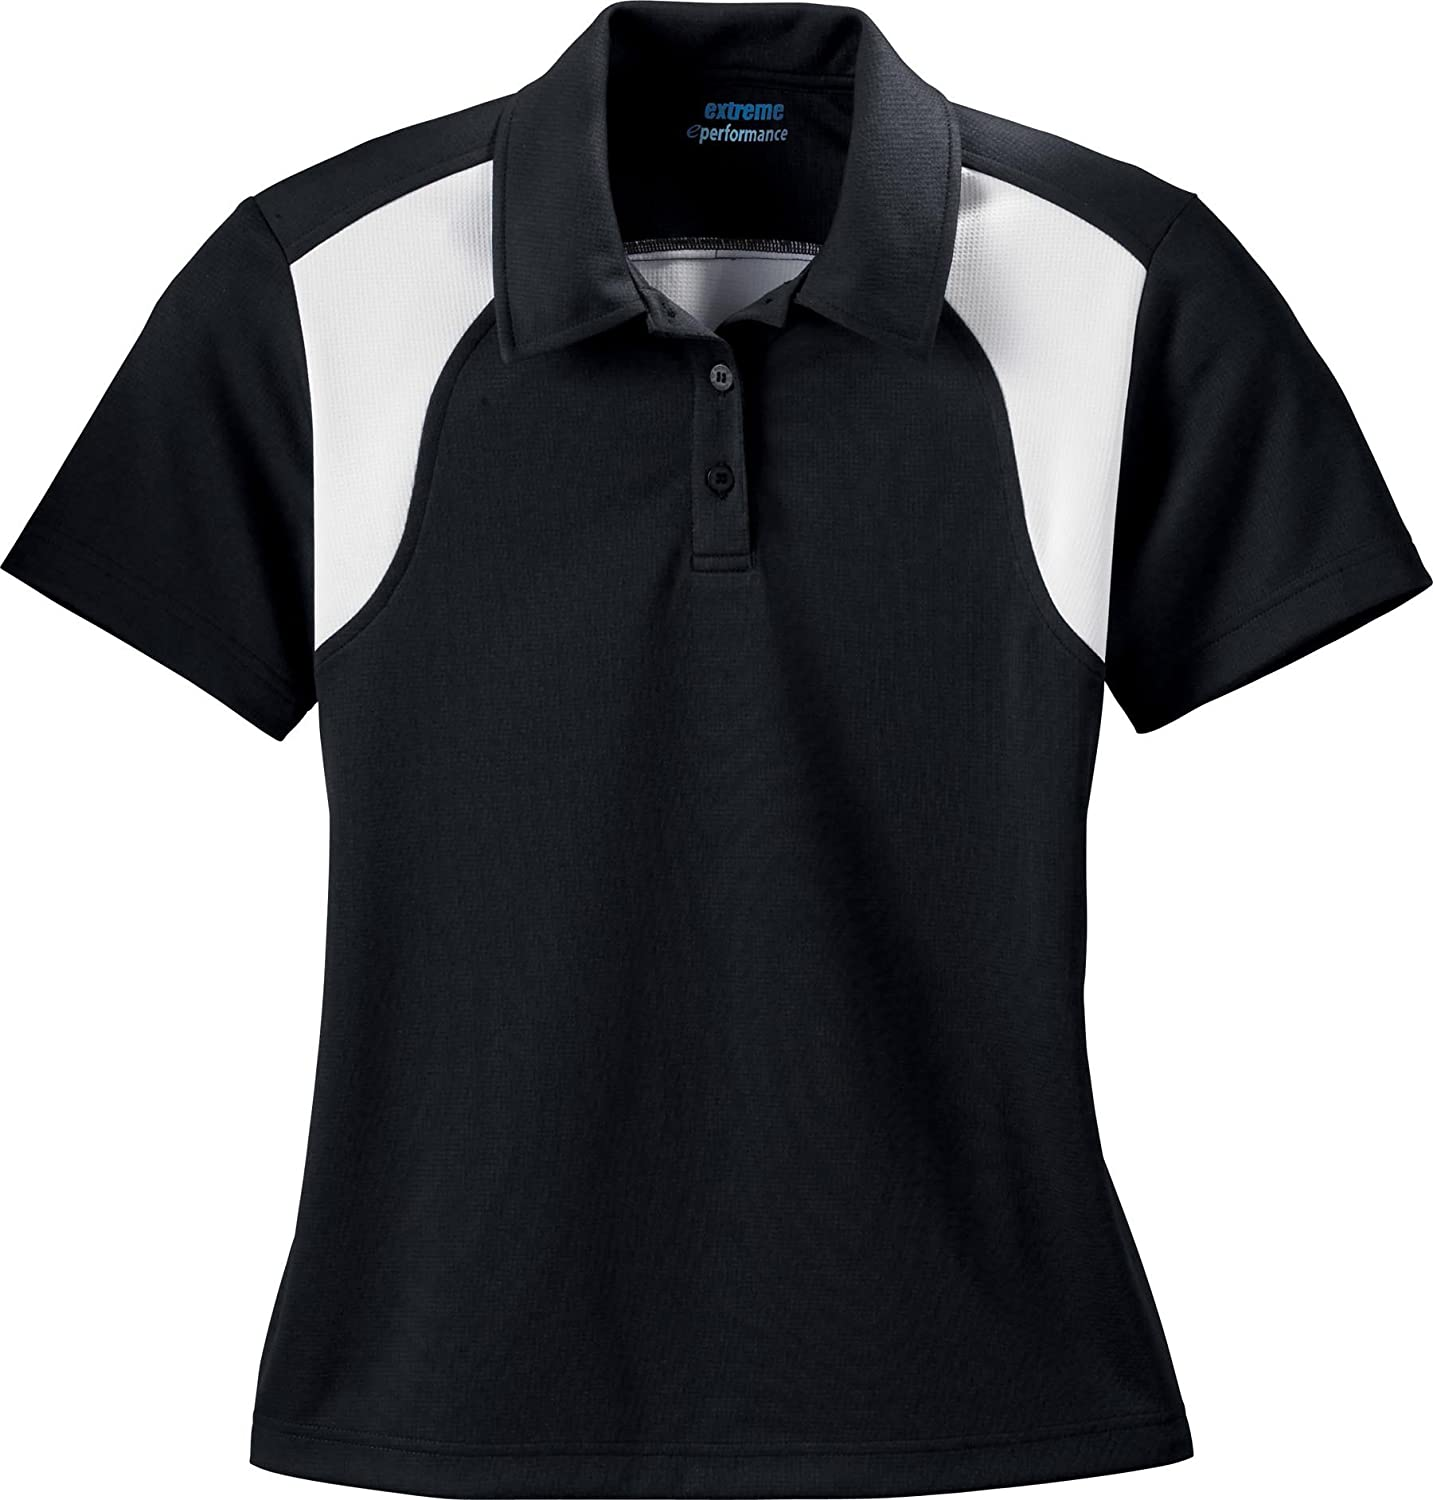 Ash City Extreme Eperformance Color-Block Textured Polo (75066) -Black -M